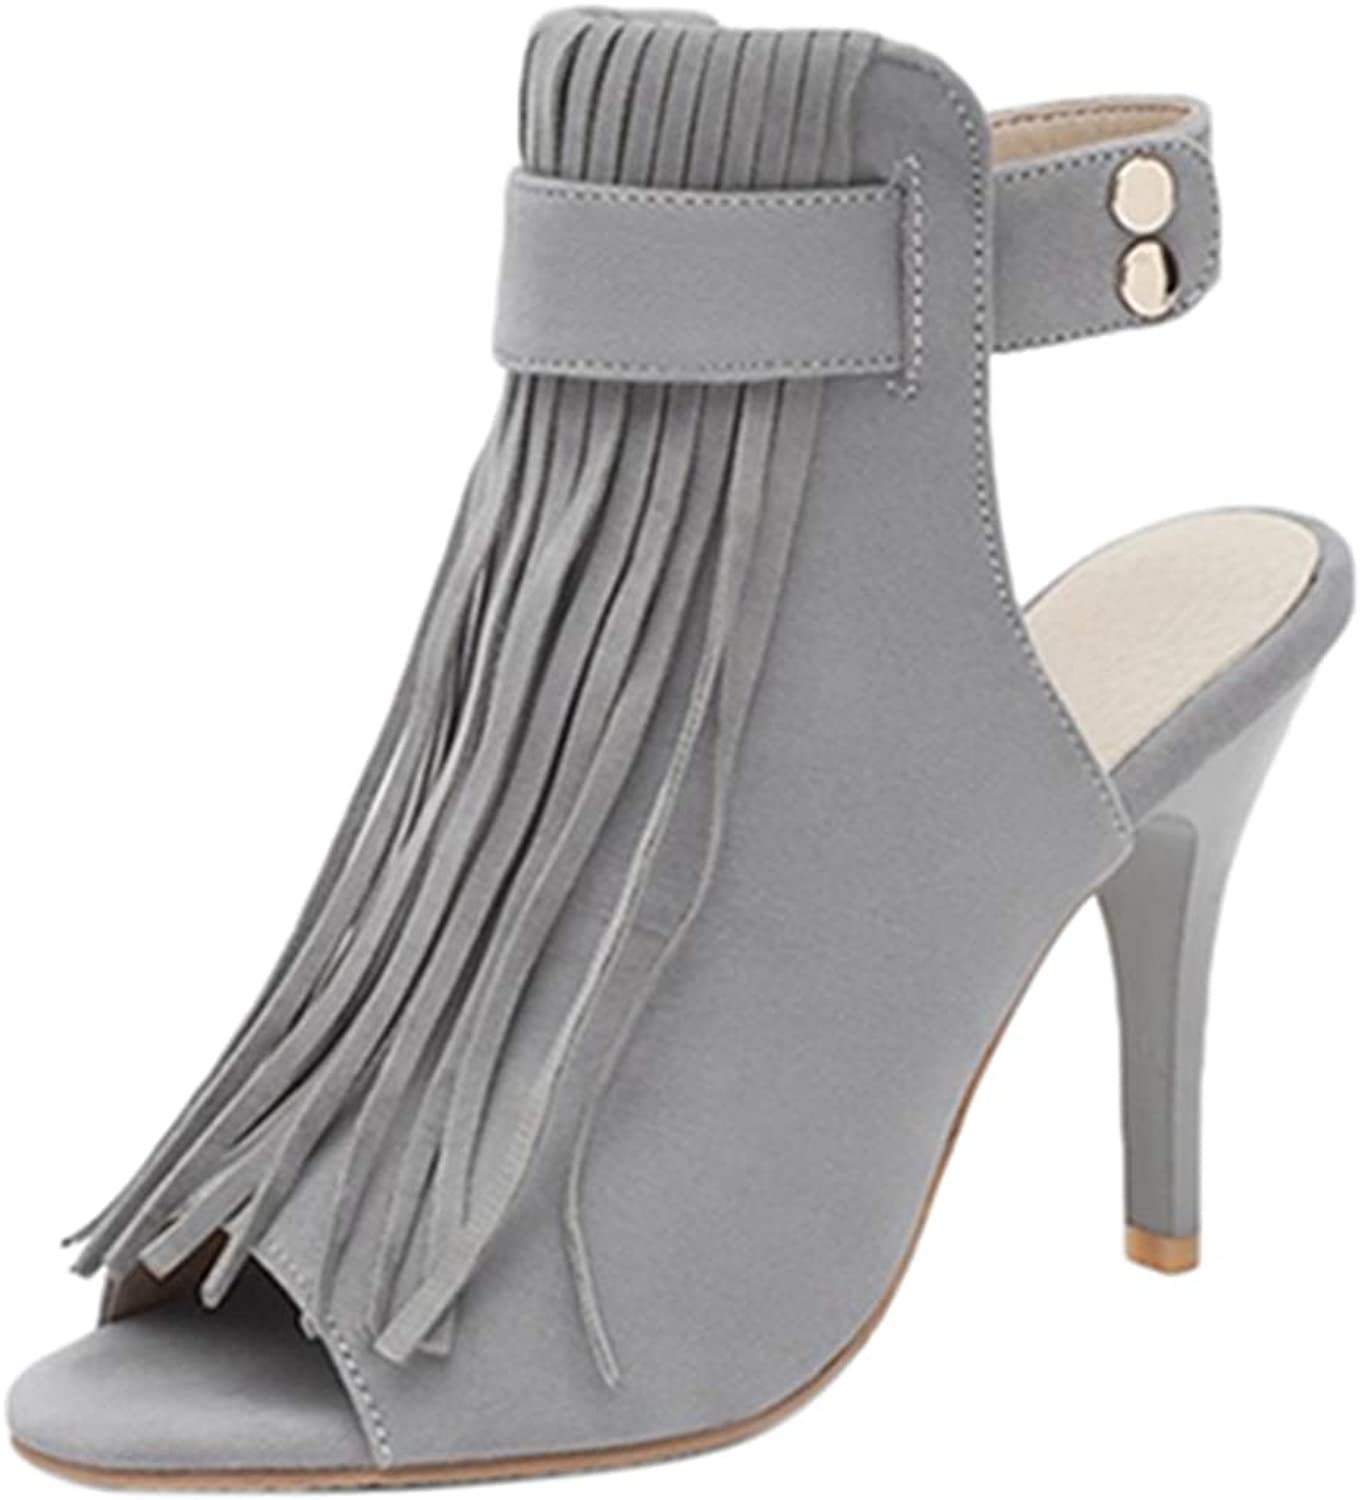 CUTEHEELS Women Boot Sandals with Open Toe and Stiletto